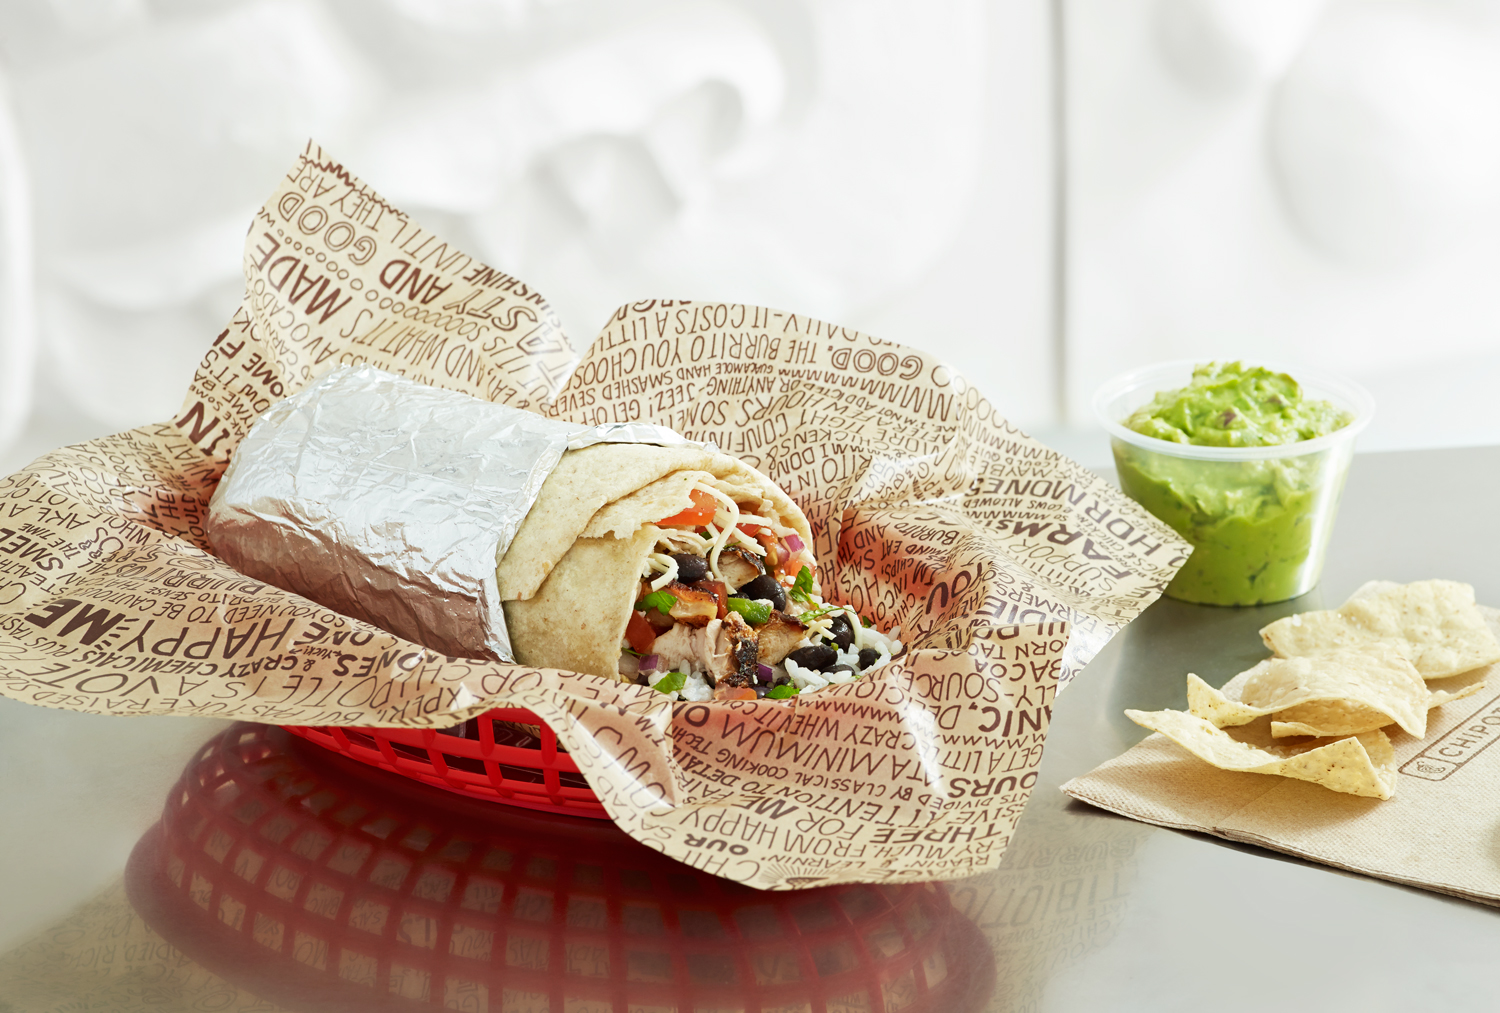 Chipotle Thanks Vets With BOGO Special on Veterans Day